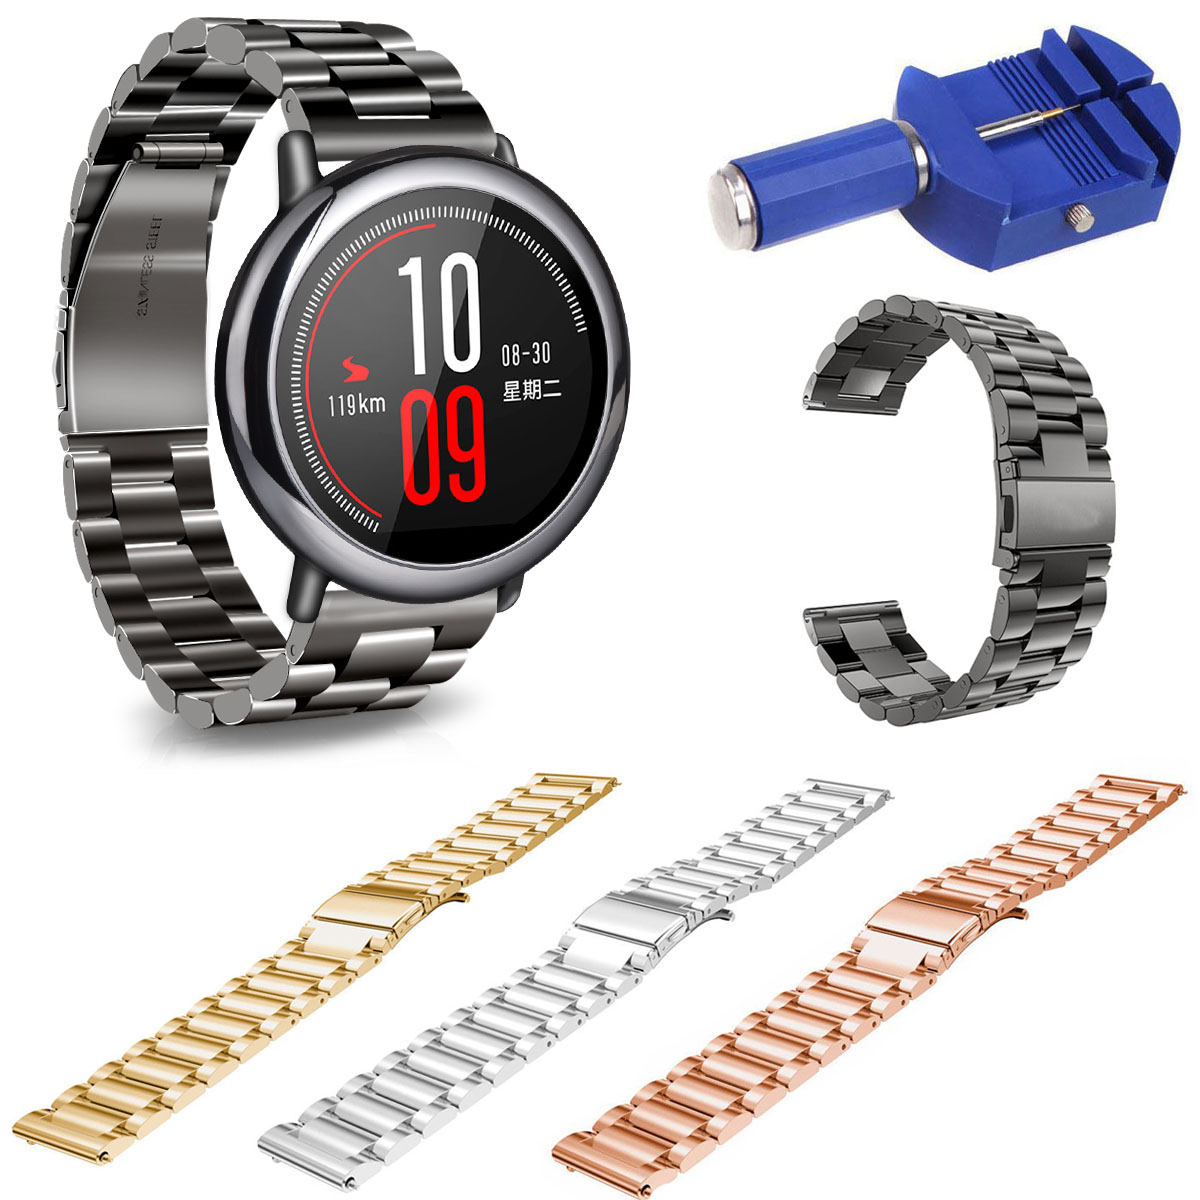 Stainless Steel Watch Band For Xiaomi Huami Amazfit A1602 Strap 22mm Classic Metal Band Belt Bracelet with Spring Pins original xiaomi steel net watch band for miband